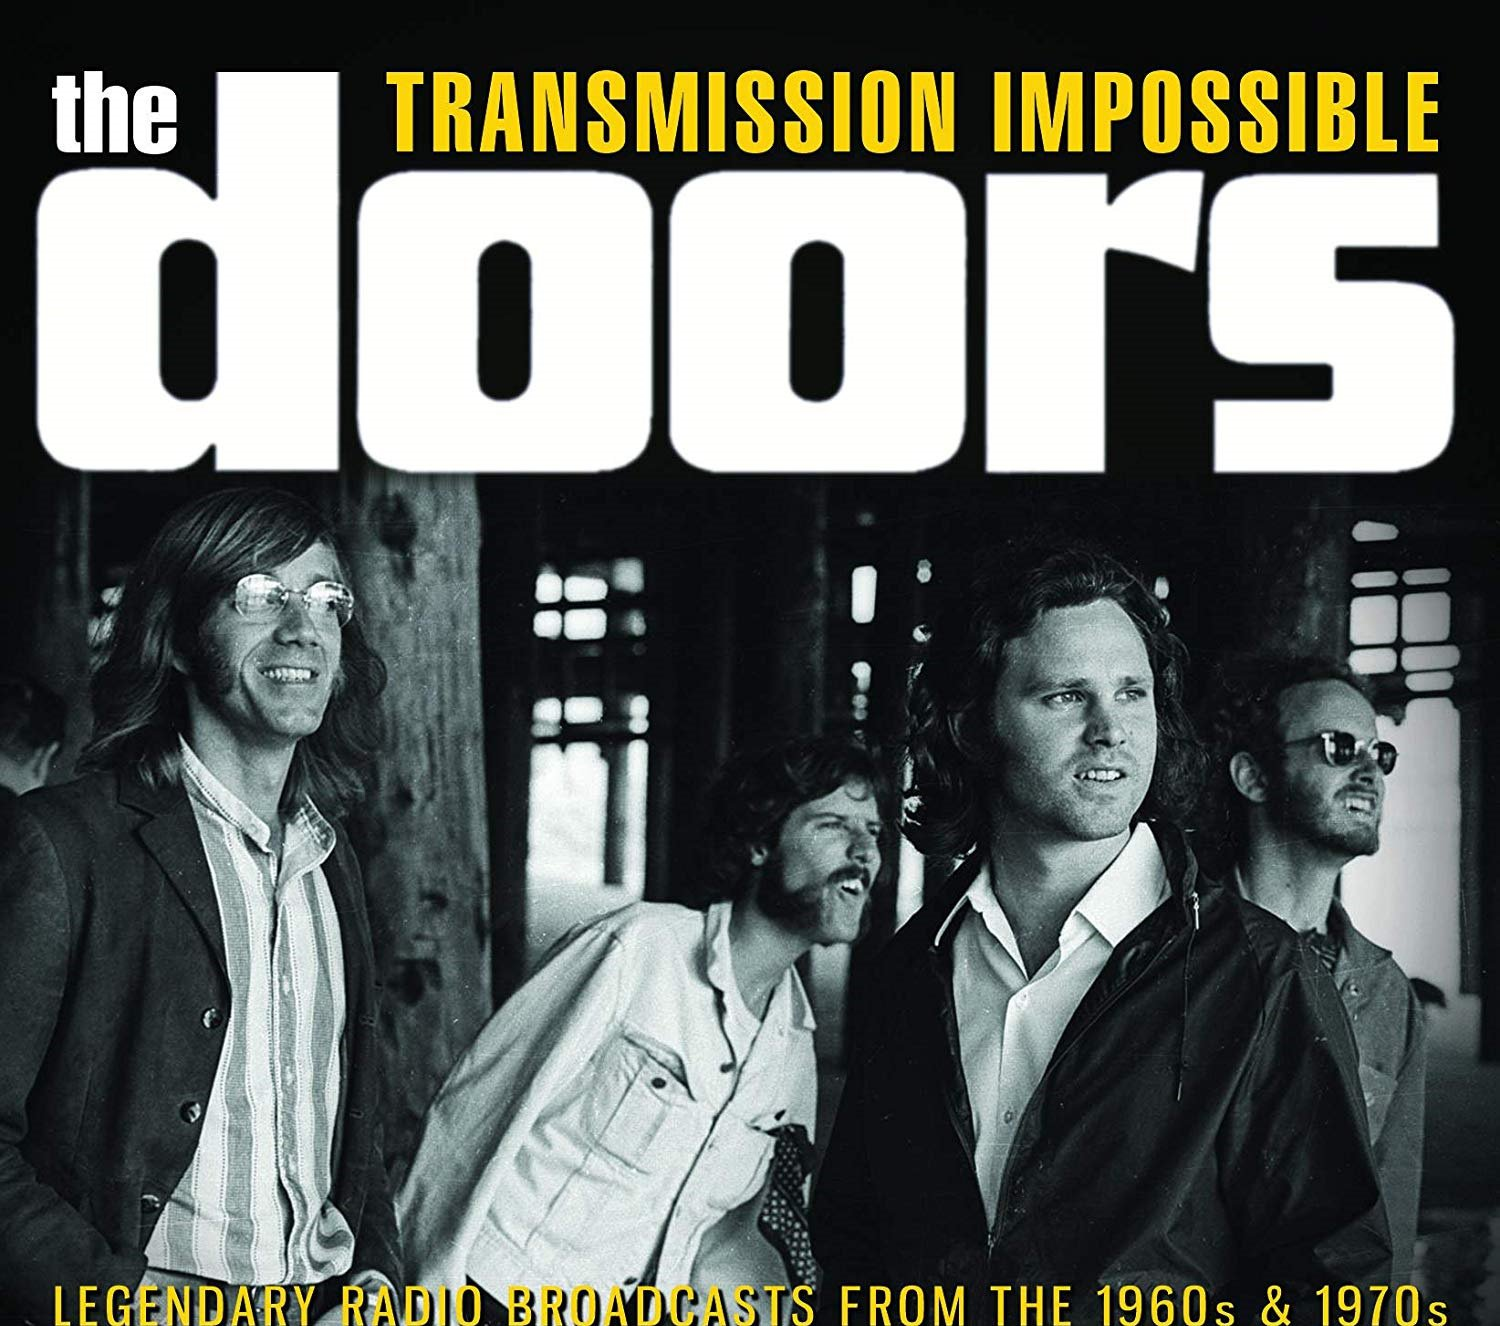 The Doors - Transmission Impossible (Silver Pressed Promo 4CD)*